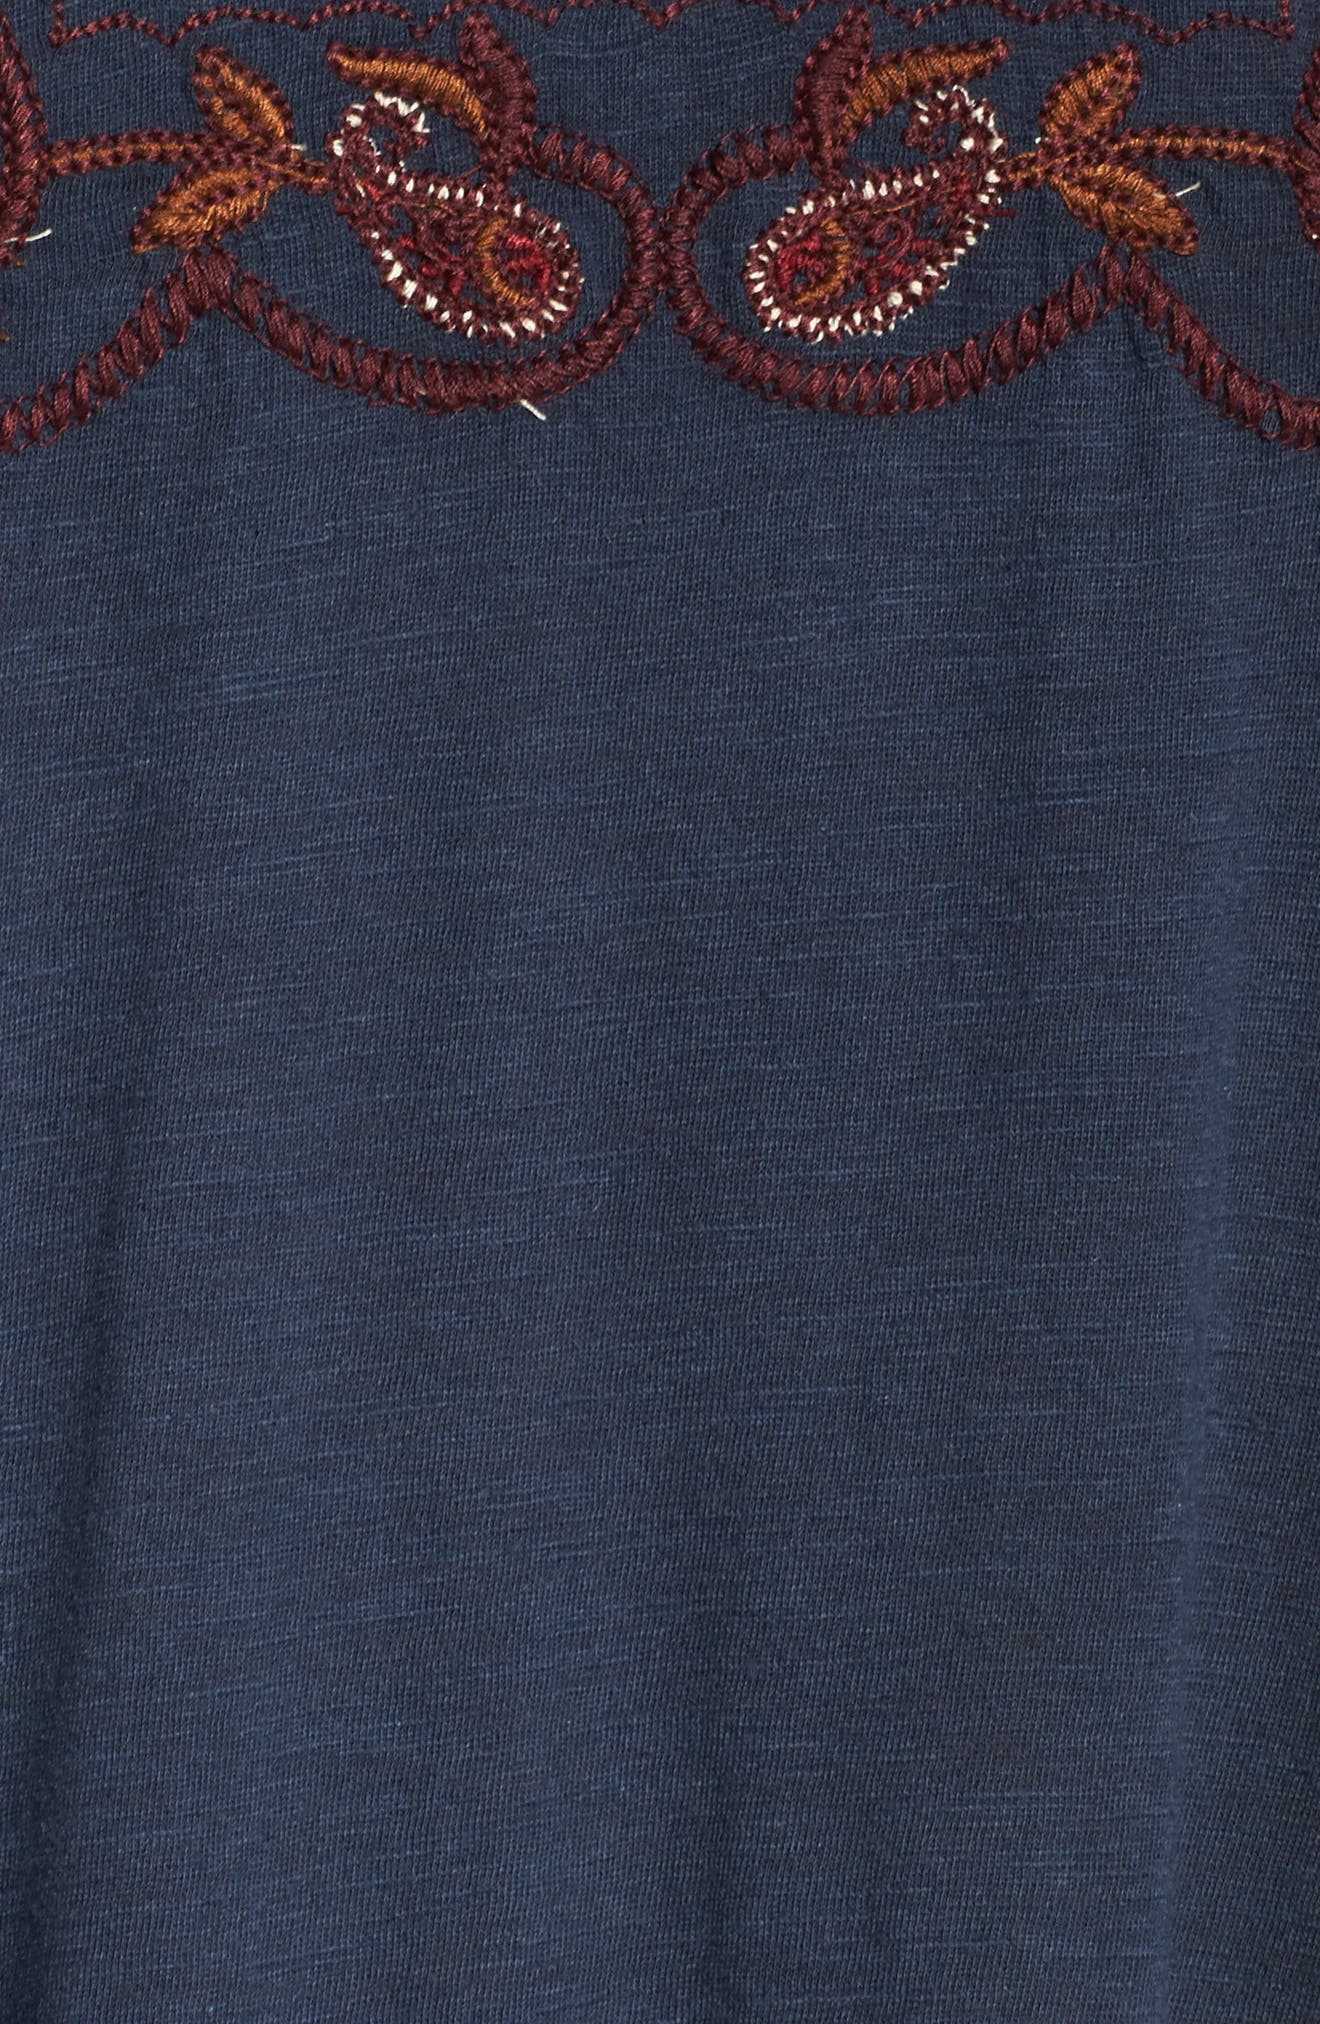 Lace Up Embroidered Peasant Top,                             Alternate thumbnail 5, color,                             Blueberry